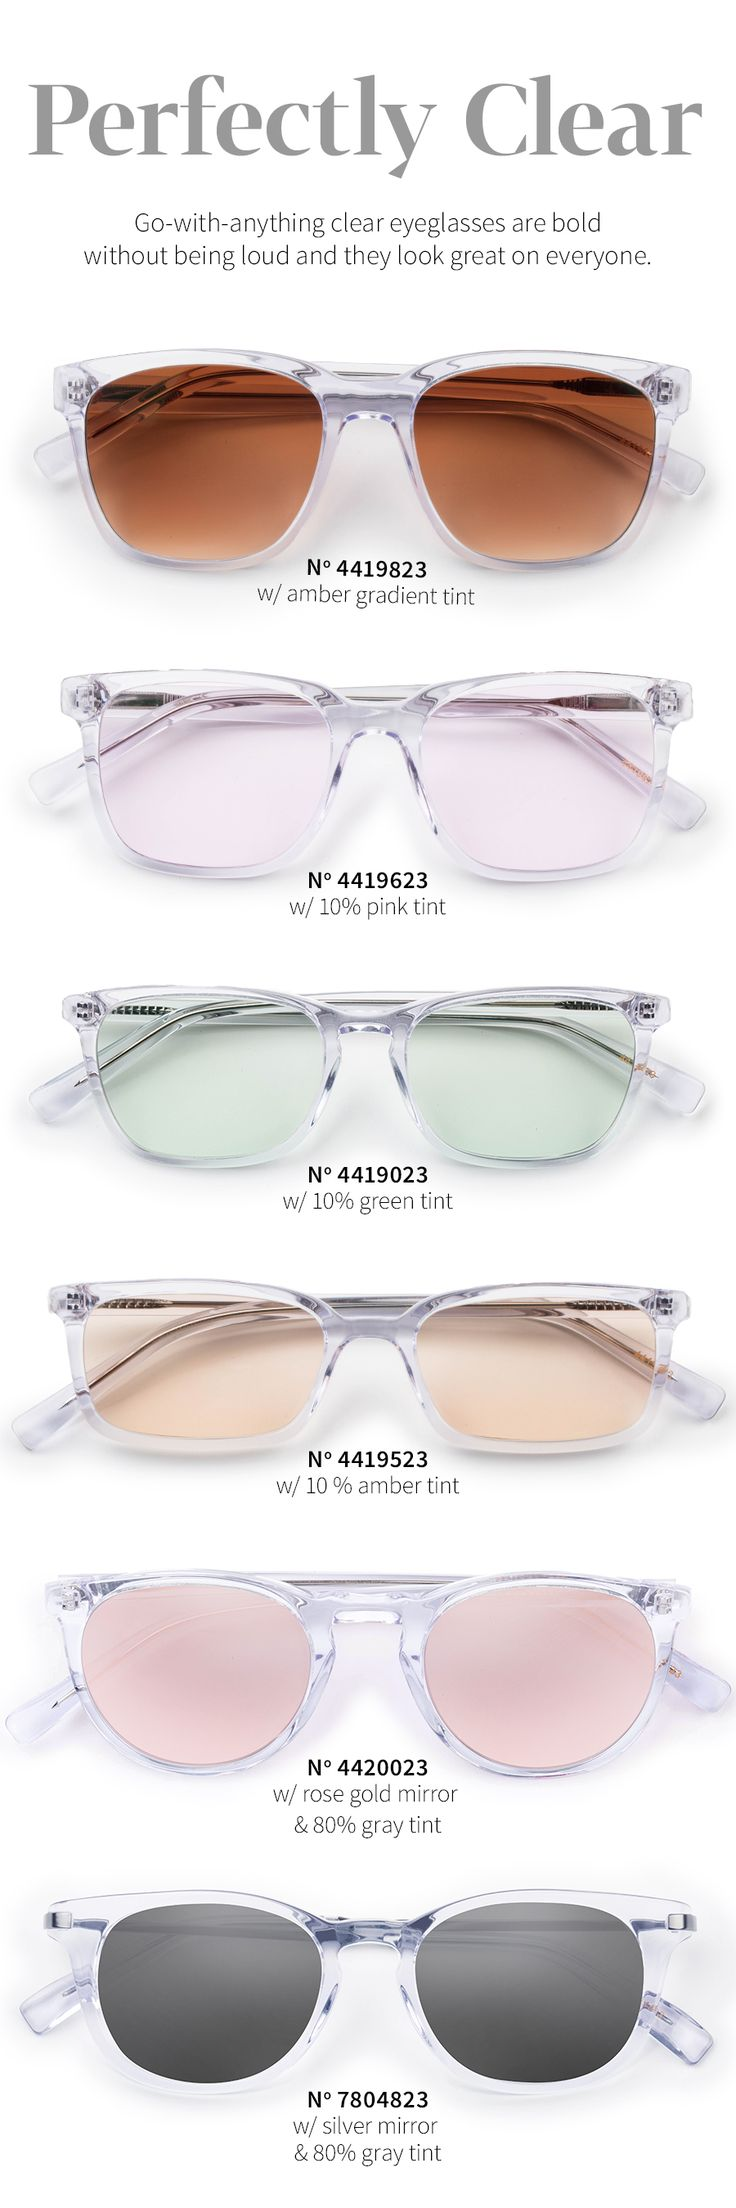 Glasses Zenni Optical Good : 237 best images about The Many Looks of Zenni on Pinterest ...